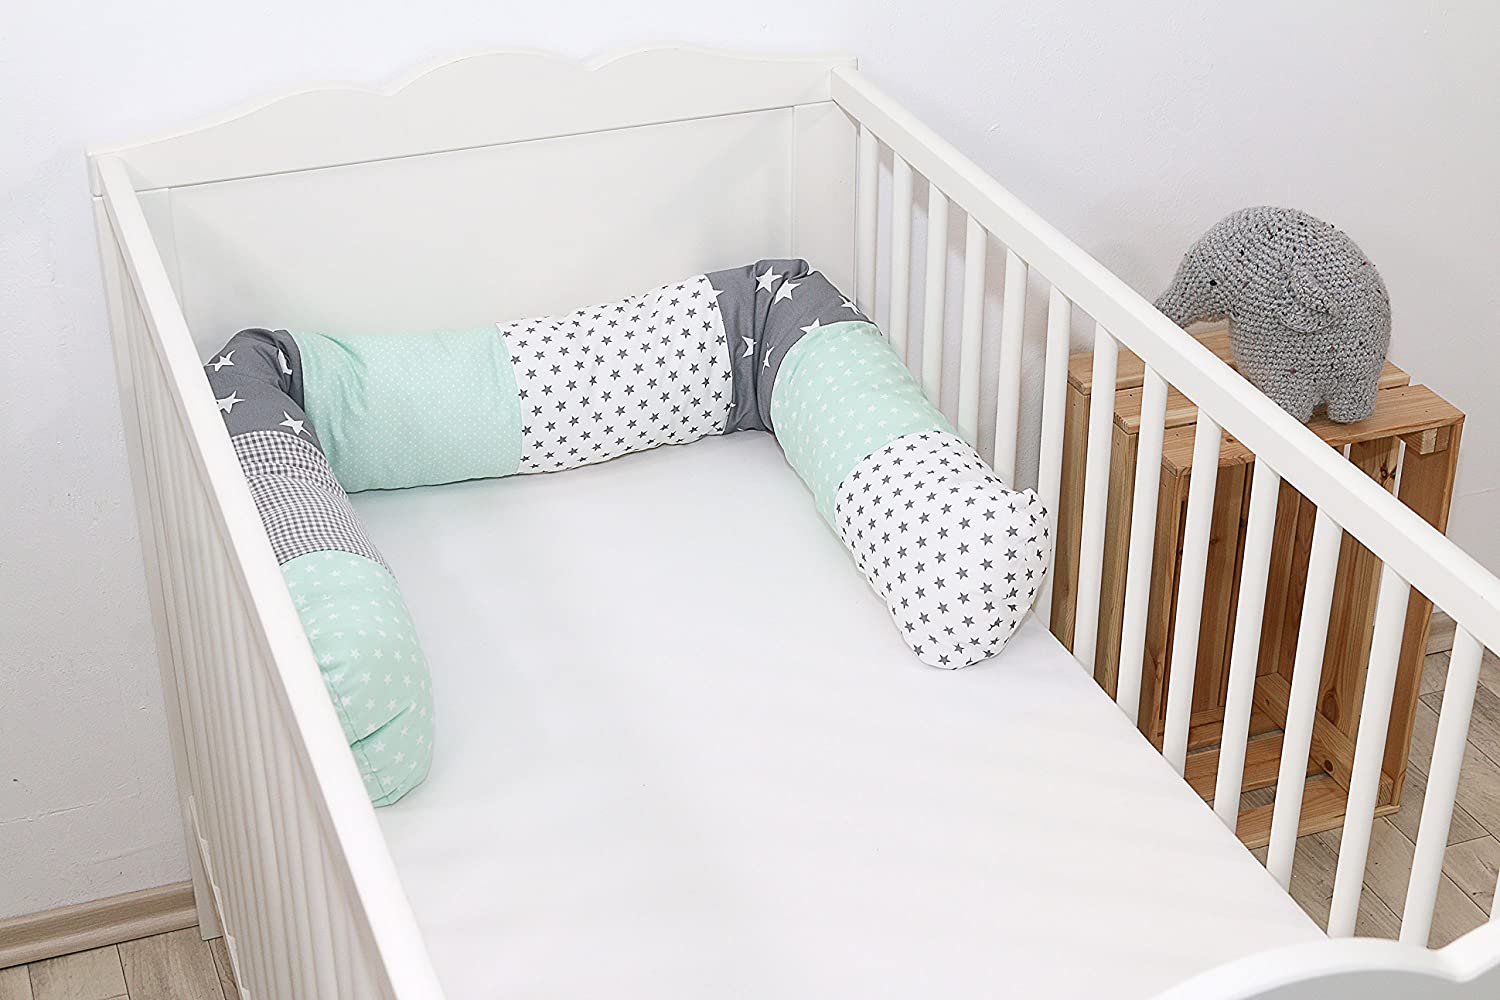 ULLENBOOM//® Bumper Snake Pillow 160x13 cm, Offers Ideal Protection from cot Edges, Support Pillow Blue Stars cot Bumper/